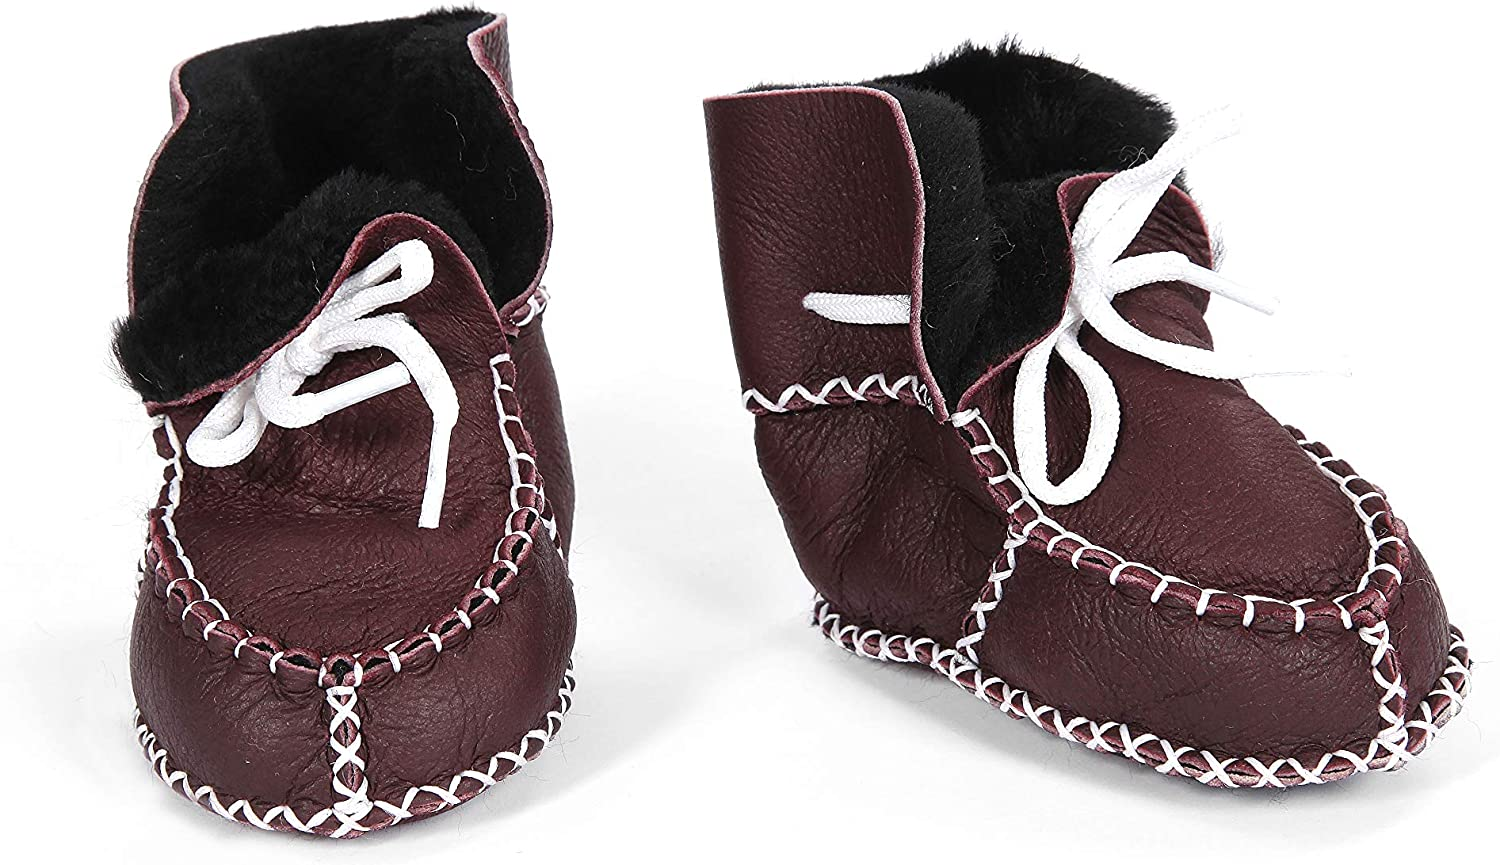 Shawnee Leather-Shearling Organic Baby Indoor Soft Sole Shoes Booties